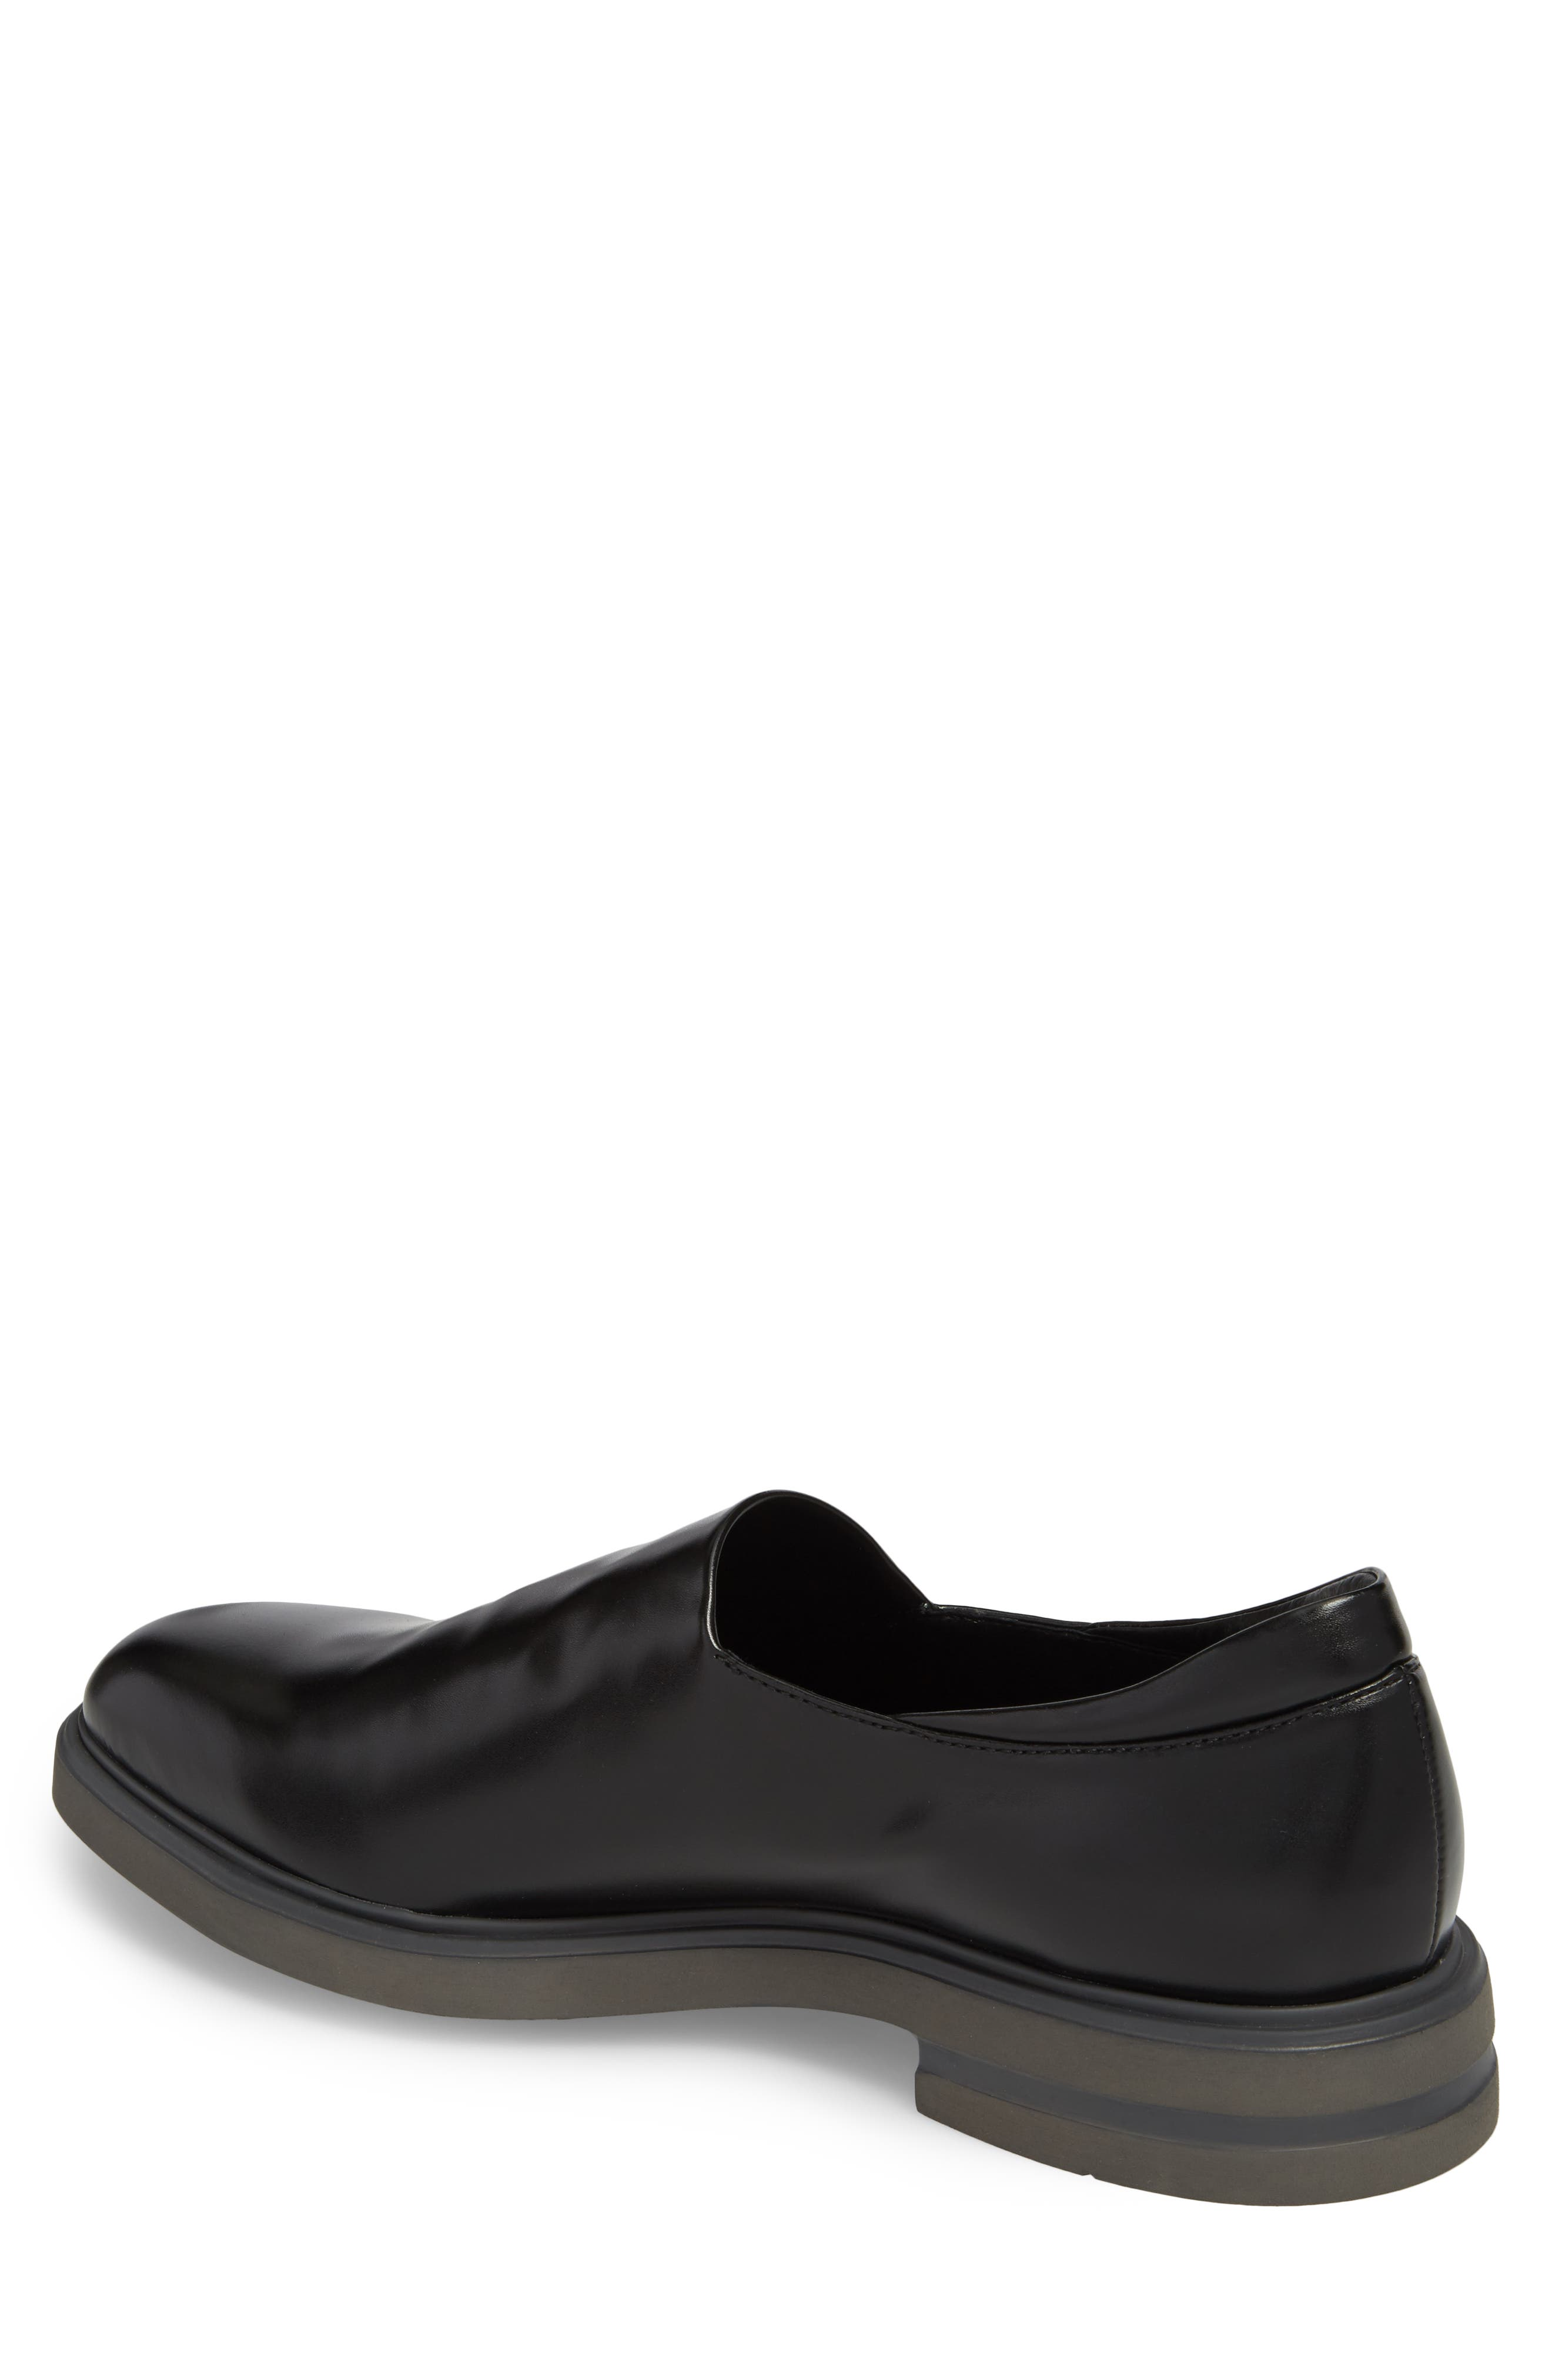 Eliam Venetian Loafer,                             Alternate thumbnail 2, color,                             Black Leather